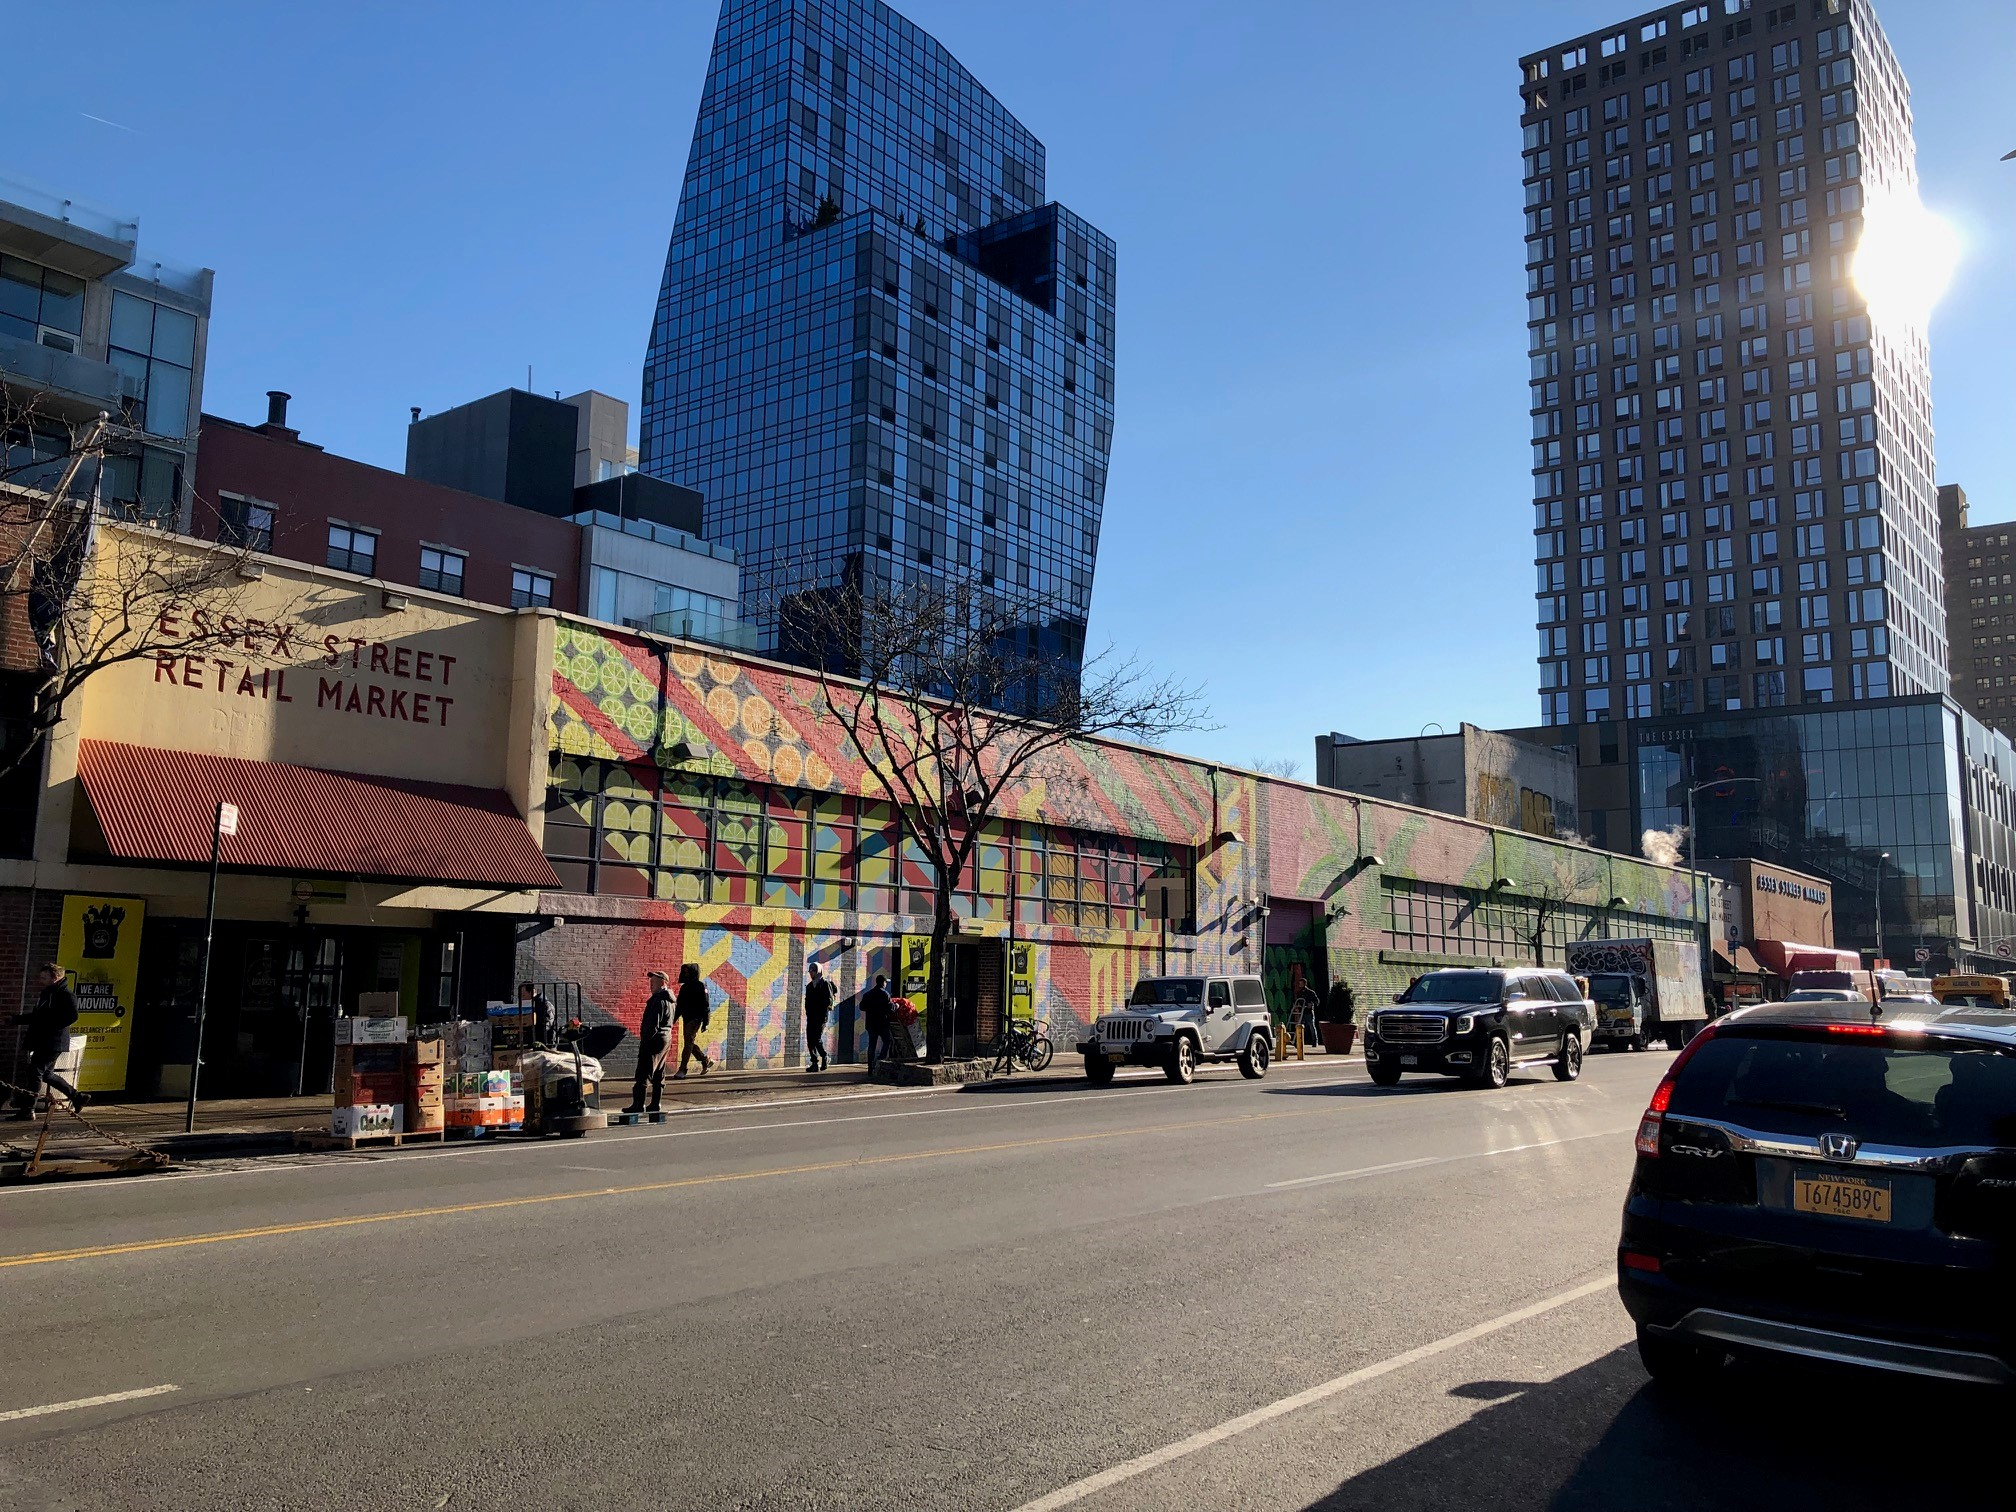 Essex Street Market Today with Essex Crossing in the background